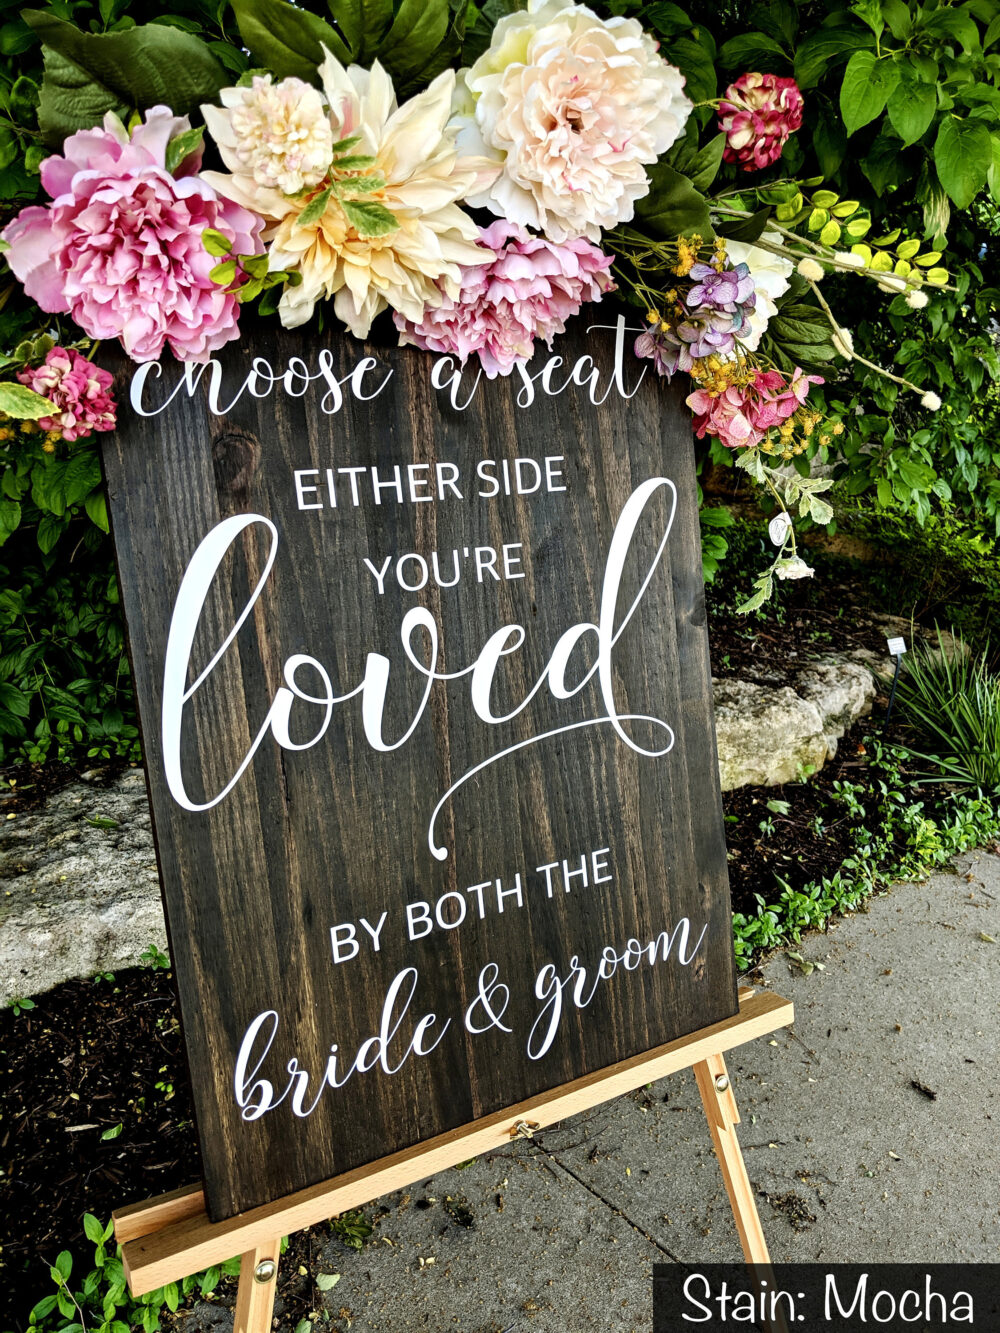 Wedding Seating Chart, Choose A Seat, Chart Sign, Find Your Rustic Wedding, Decor, Signage, Wood Sign